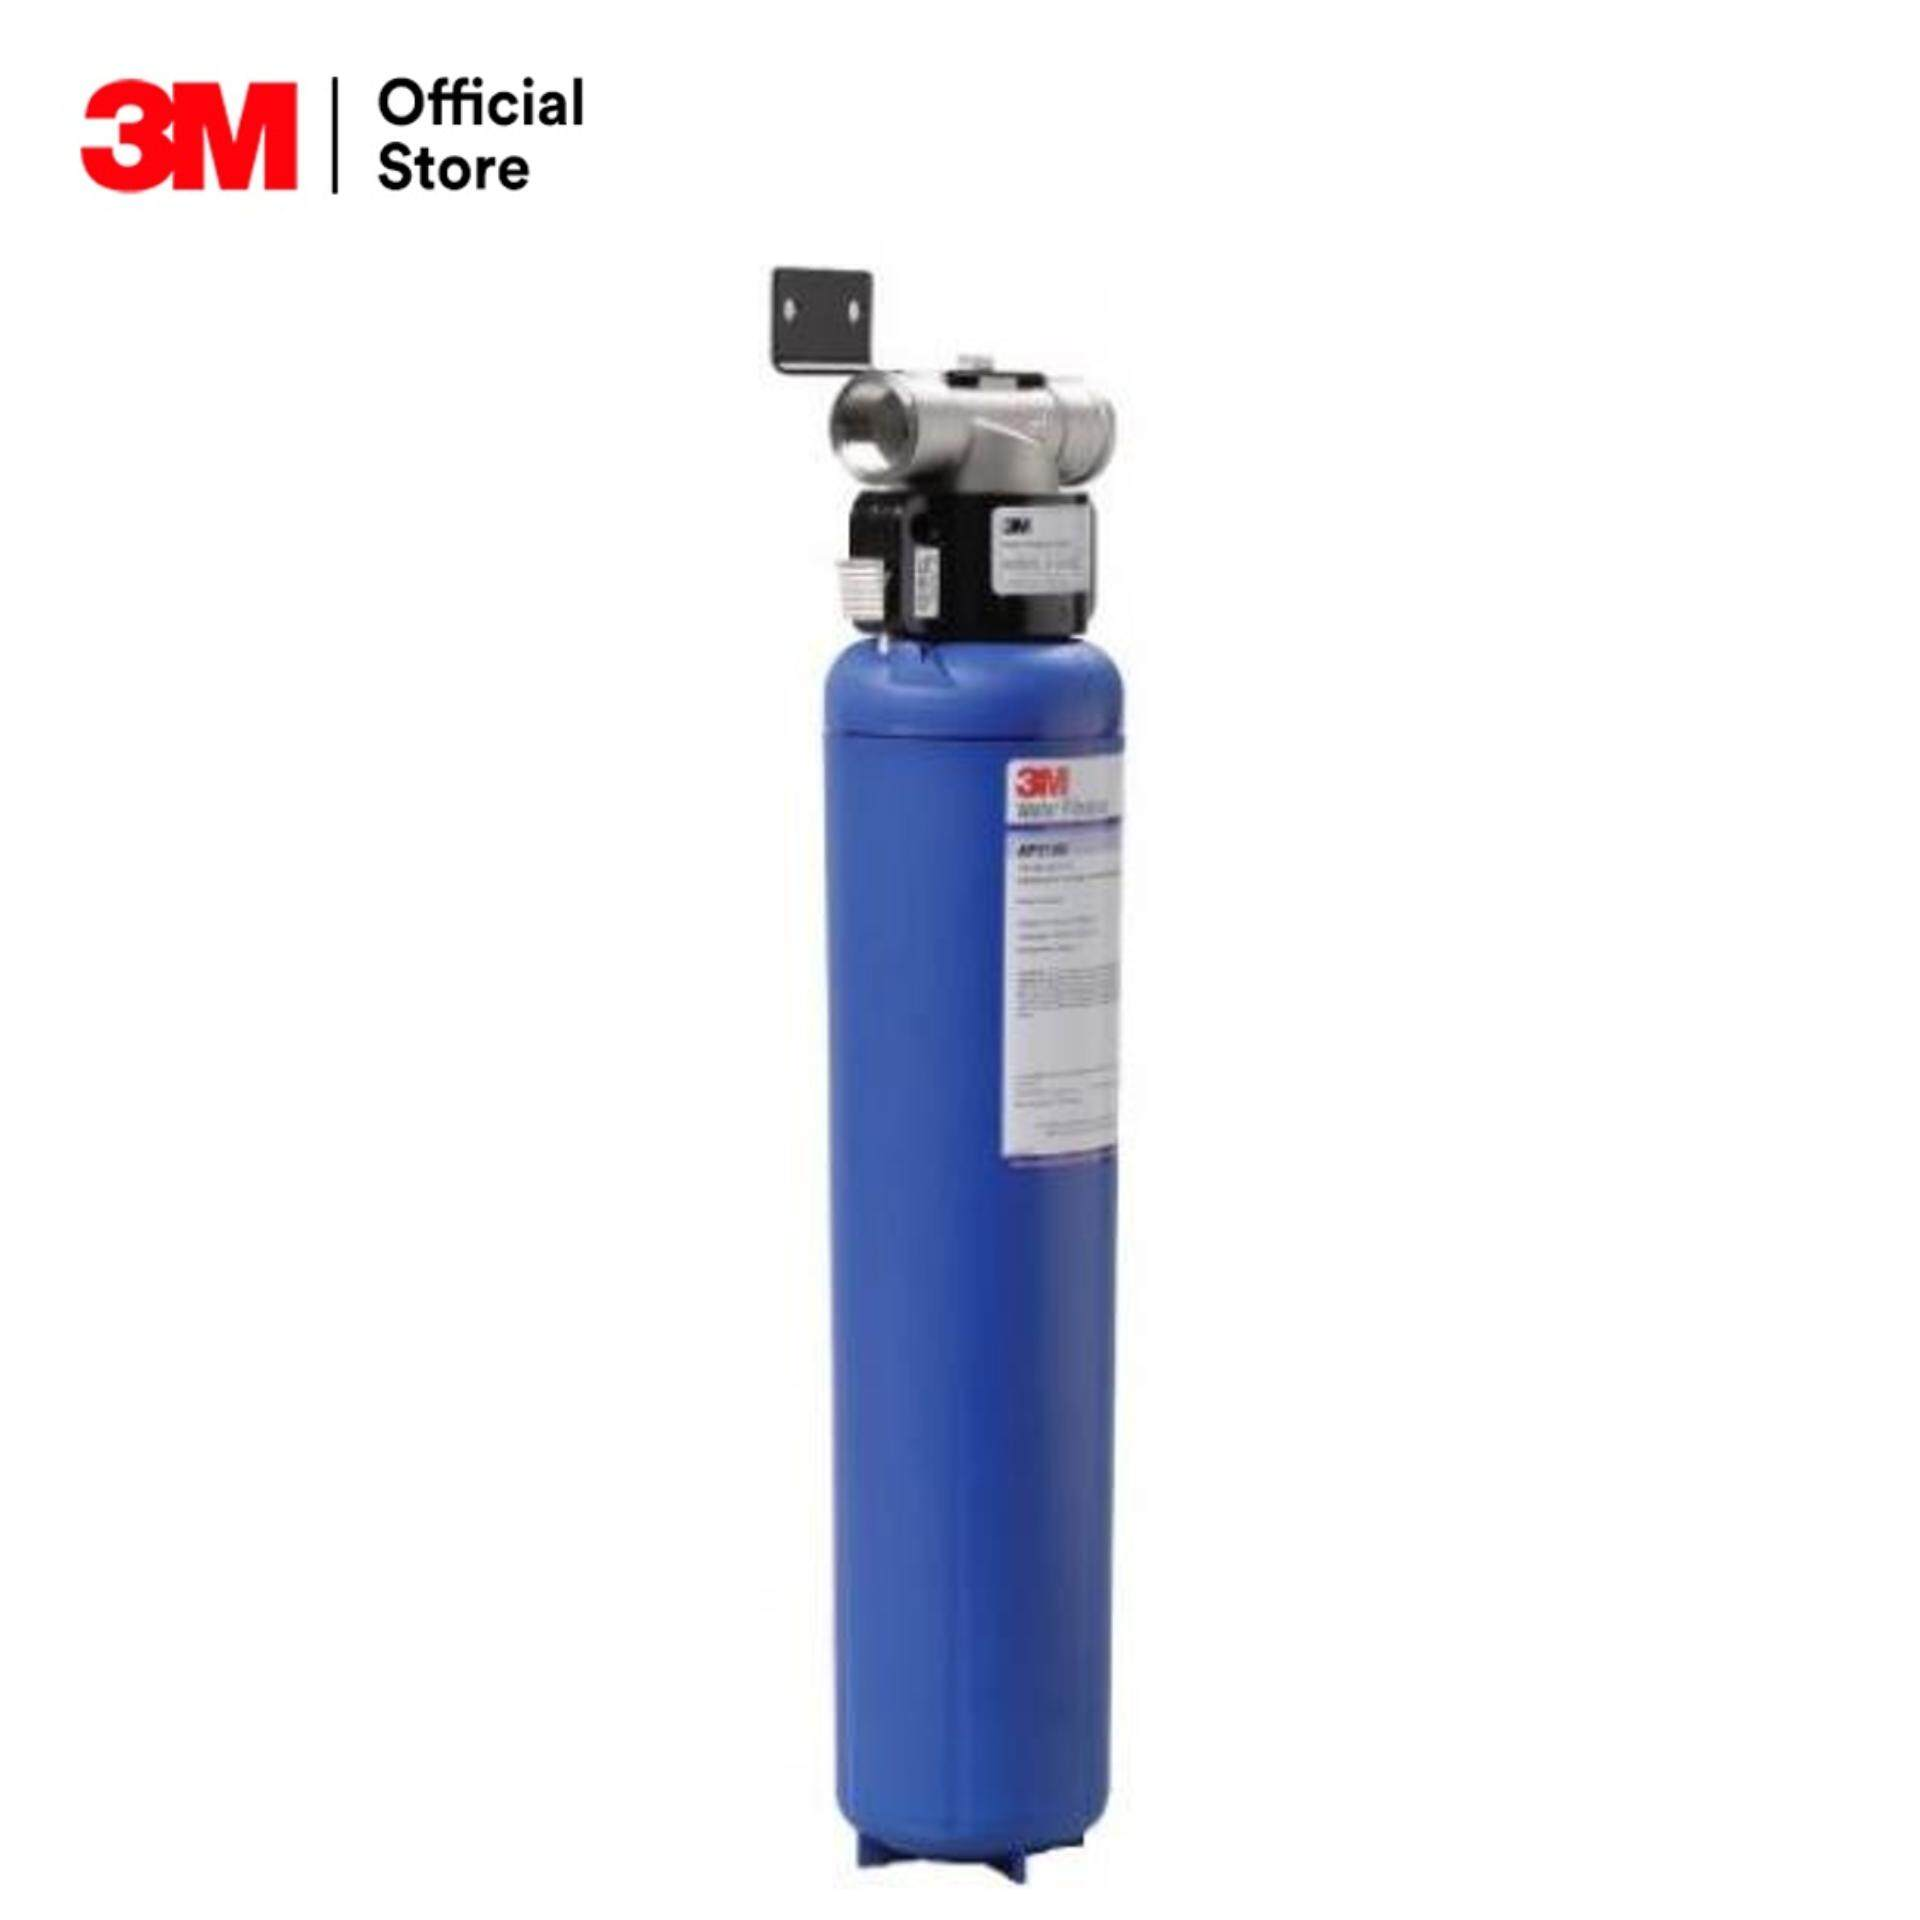 3m Wholehouse Filter (ap902) เครื่องกรองน้ำใช้ รุ่น Wholehouse Filter (ap902) By 3m Official Online Store.